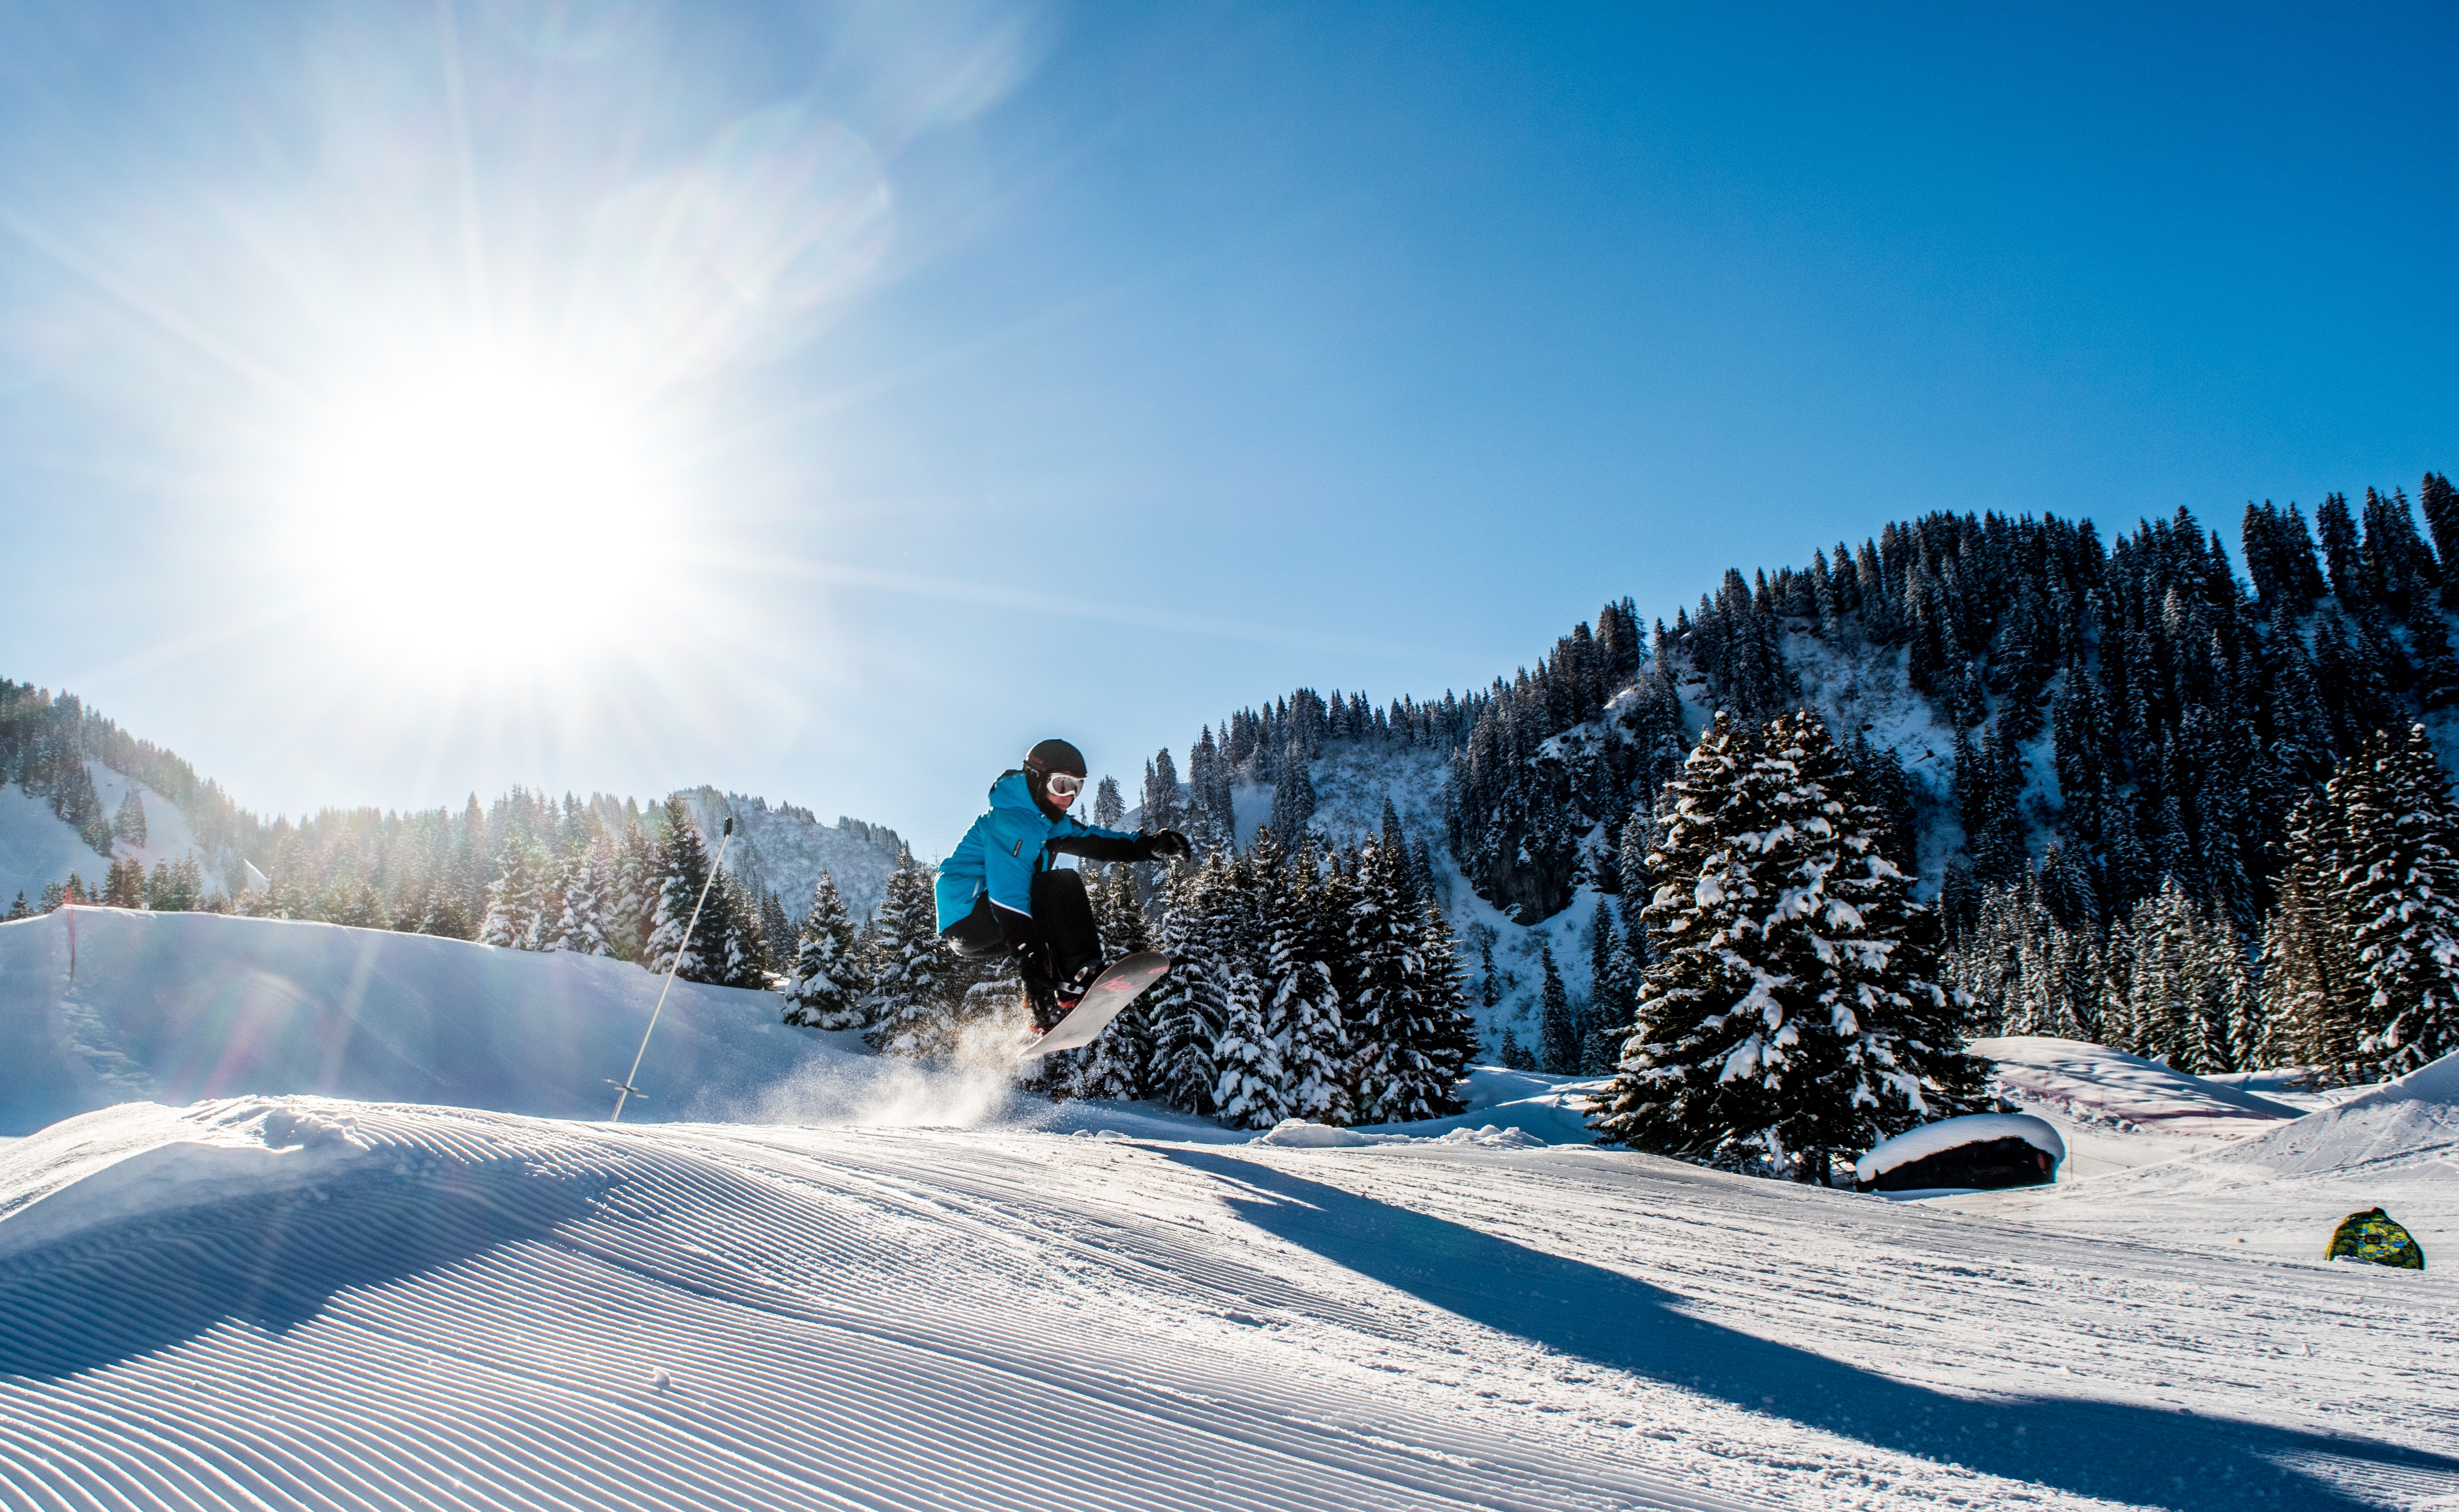 person on snowboard in distant of trees